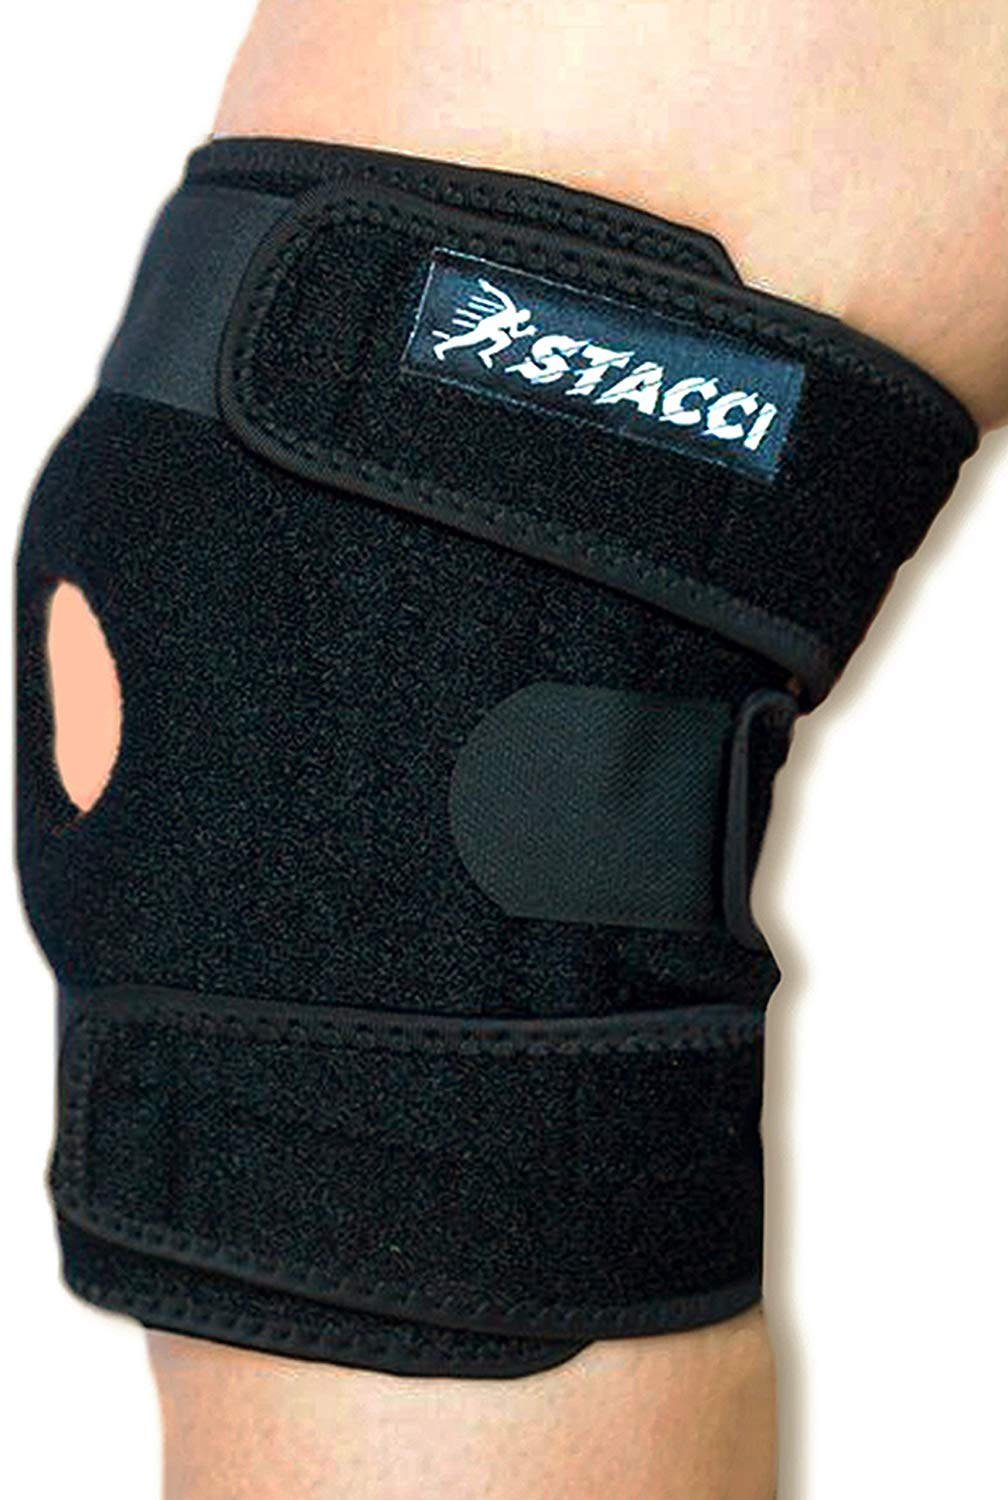 be9b4b0af0 Get Quotations · Knee Brace for Sprained Knee/Patella Stabilizer for  Dislocated, Injured, Swollen Knee +